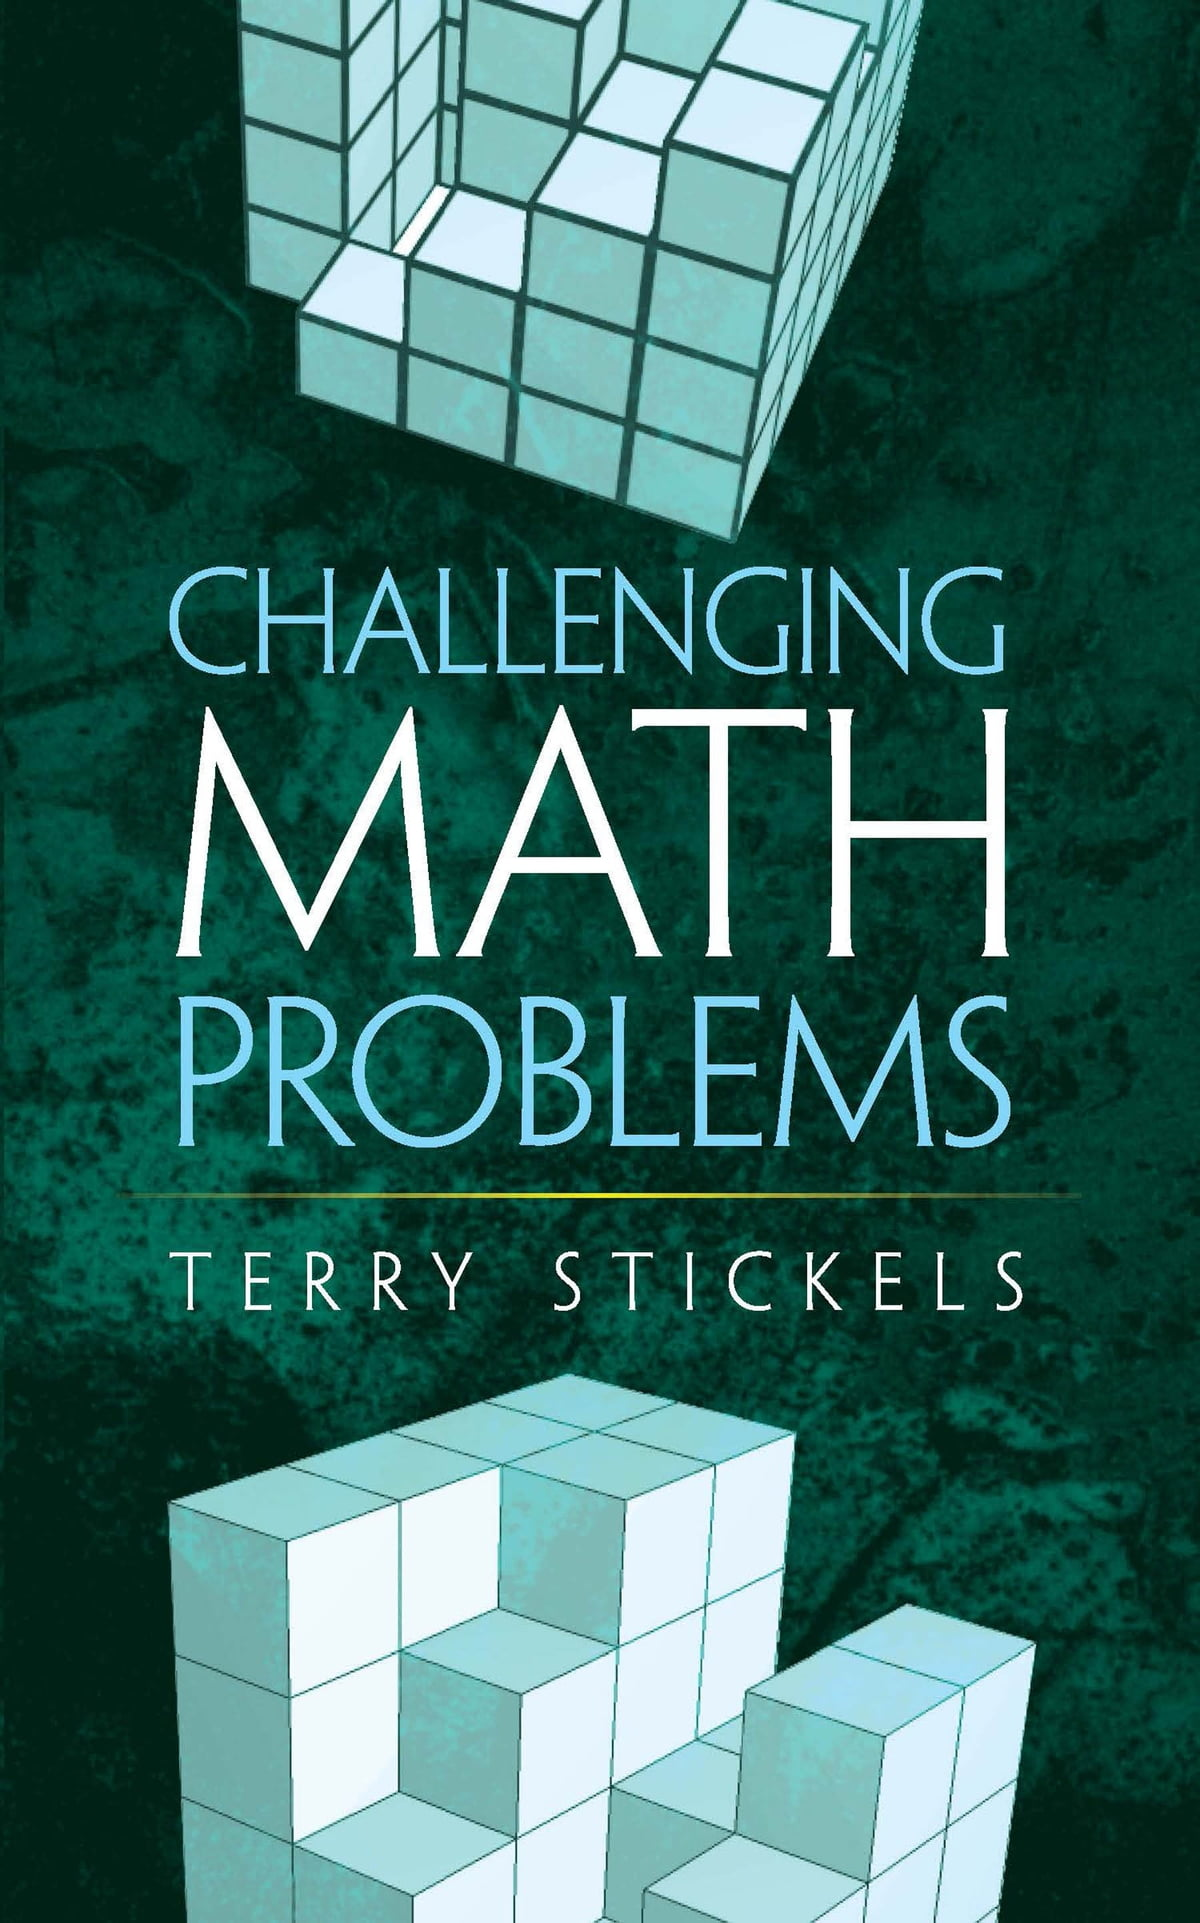 Challenging Math Problems eBook by Terry Stickels - 9780486808574 ...